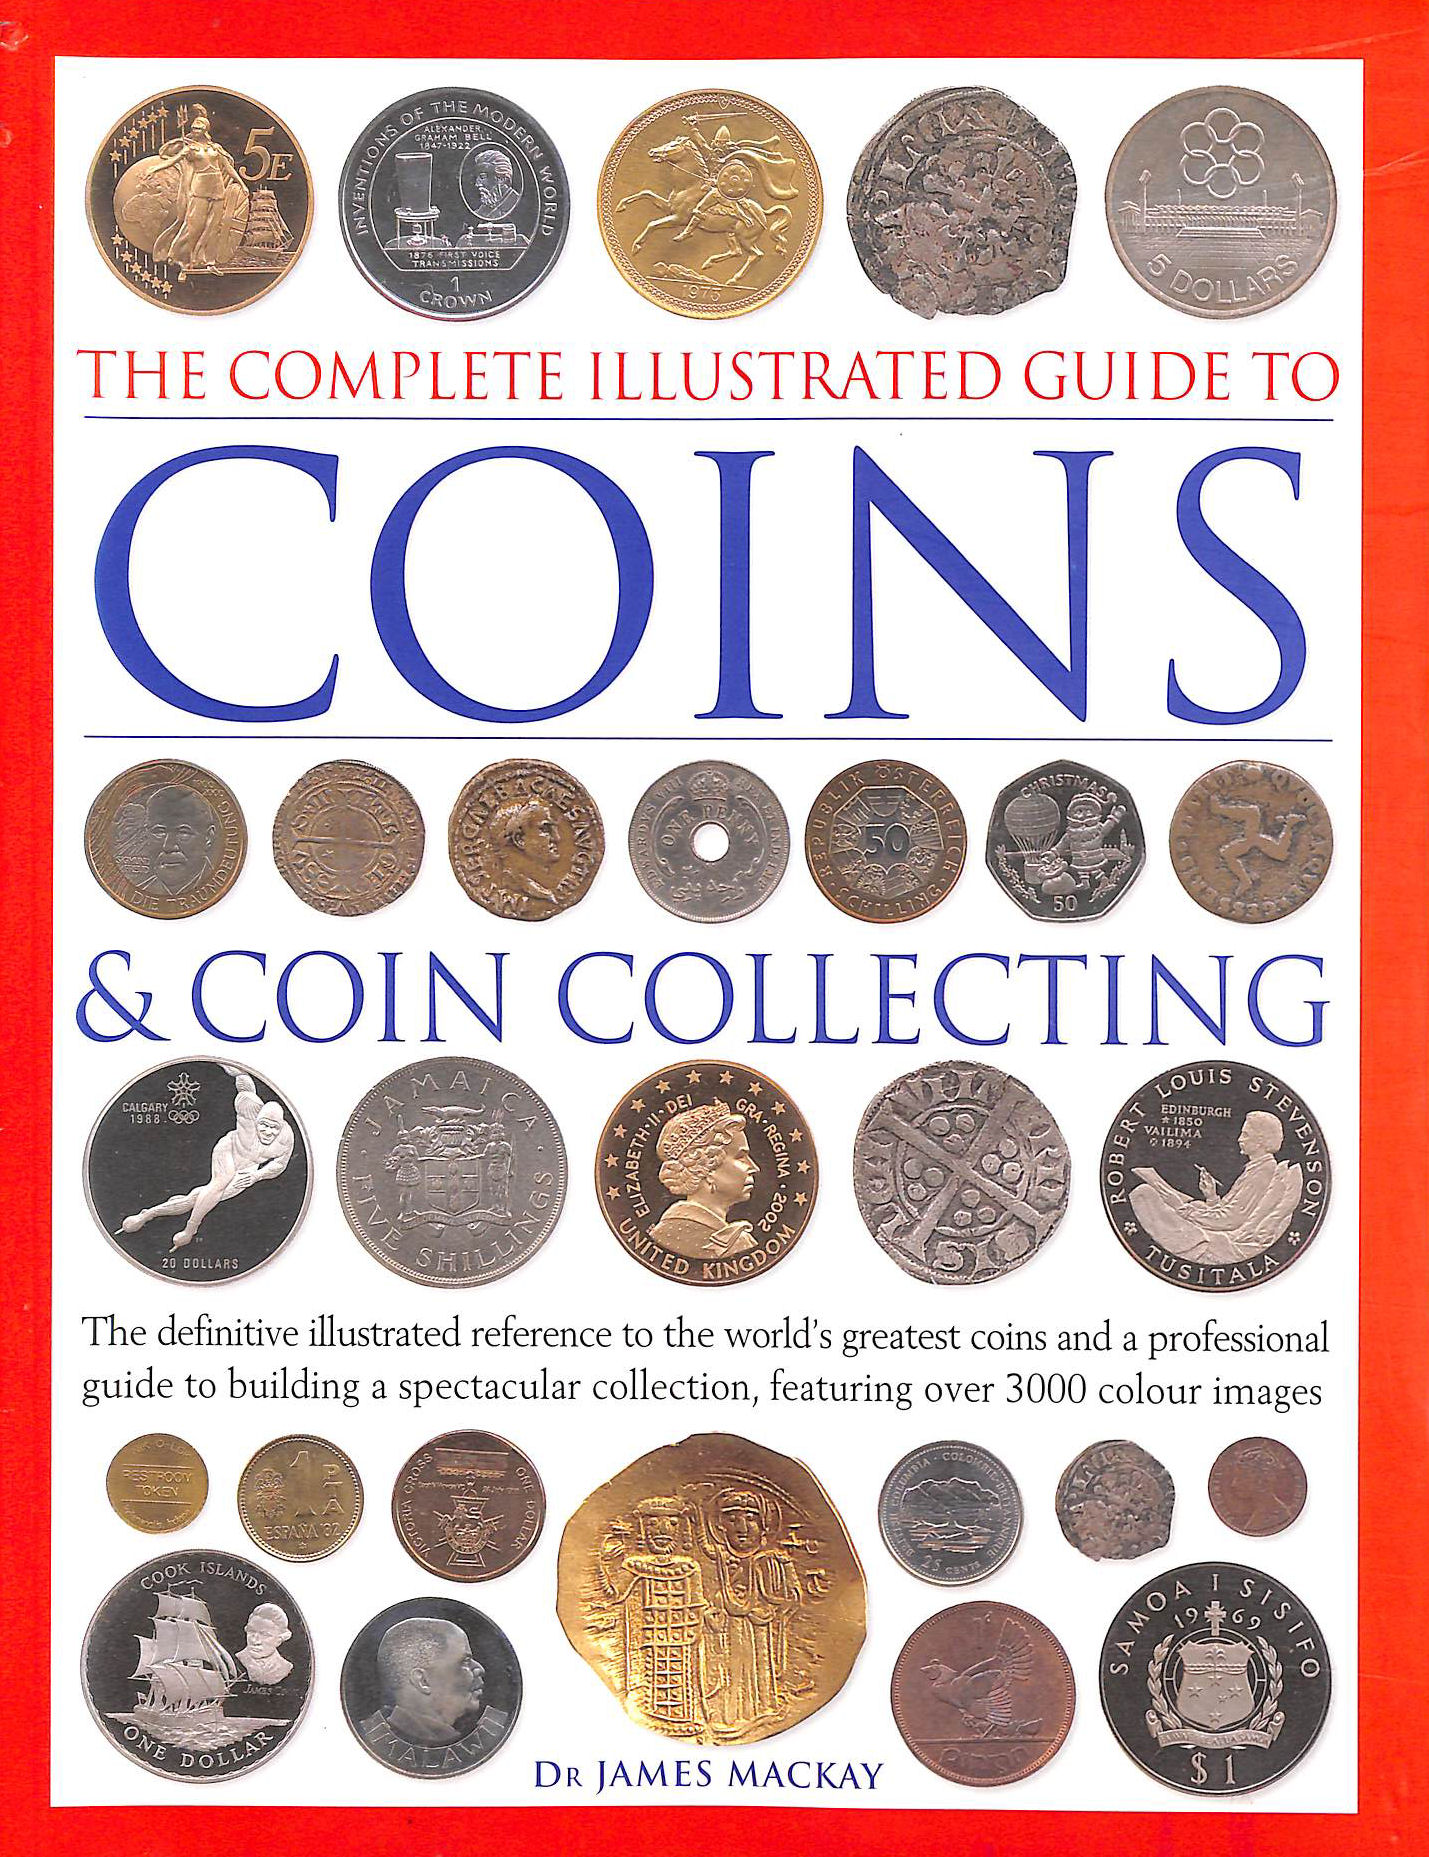 Image for The Complete Illustrated Guide to Coins and Coin Collecting: The Defdinitive Illustrated Reference to the World's Greatest Coins and a Professional Guide to Building a Spectacular Collection, Featuring over 3,000 Colour Images